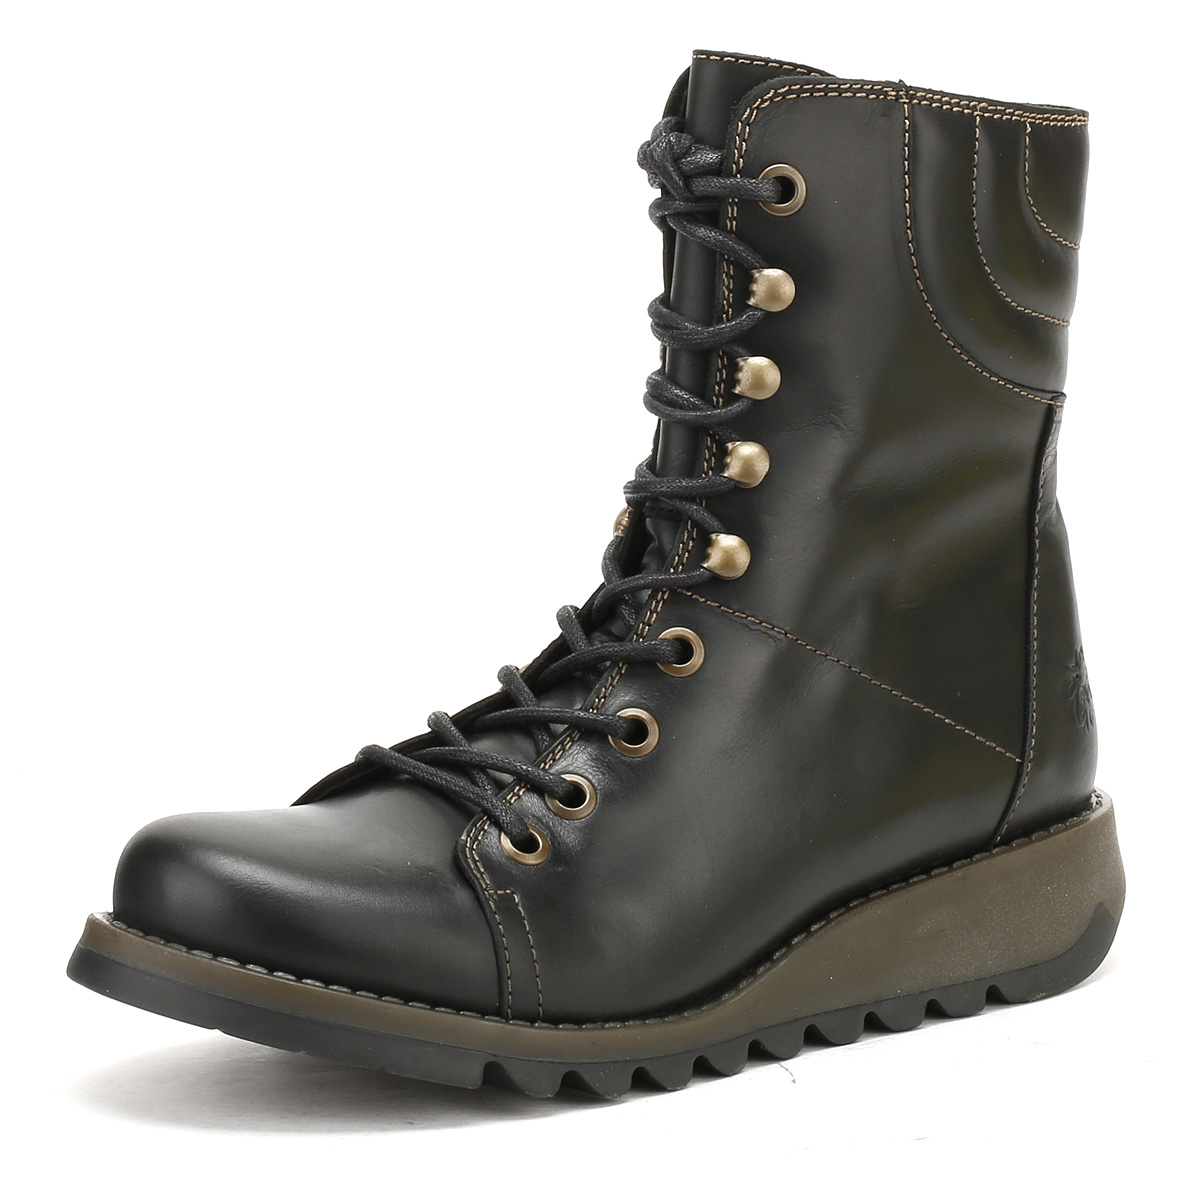 a581faf230537 Details about Fly London Womens Black Same109Fly Rug Biker Boots Mid Calf Lace  Up Casual Shoes